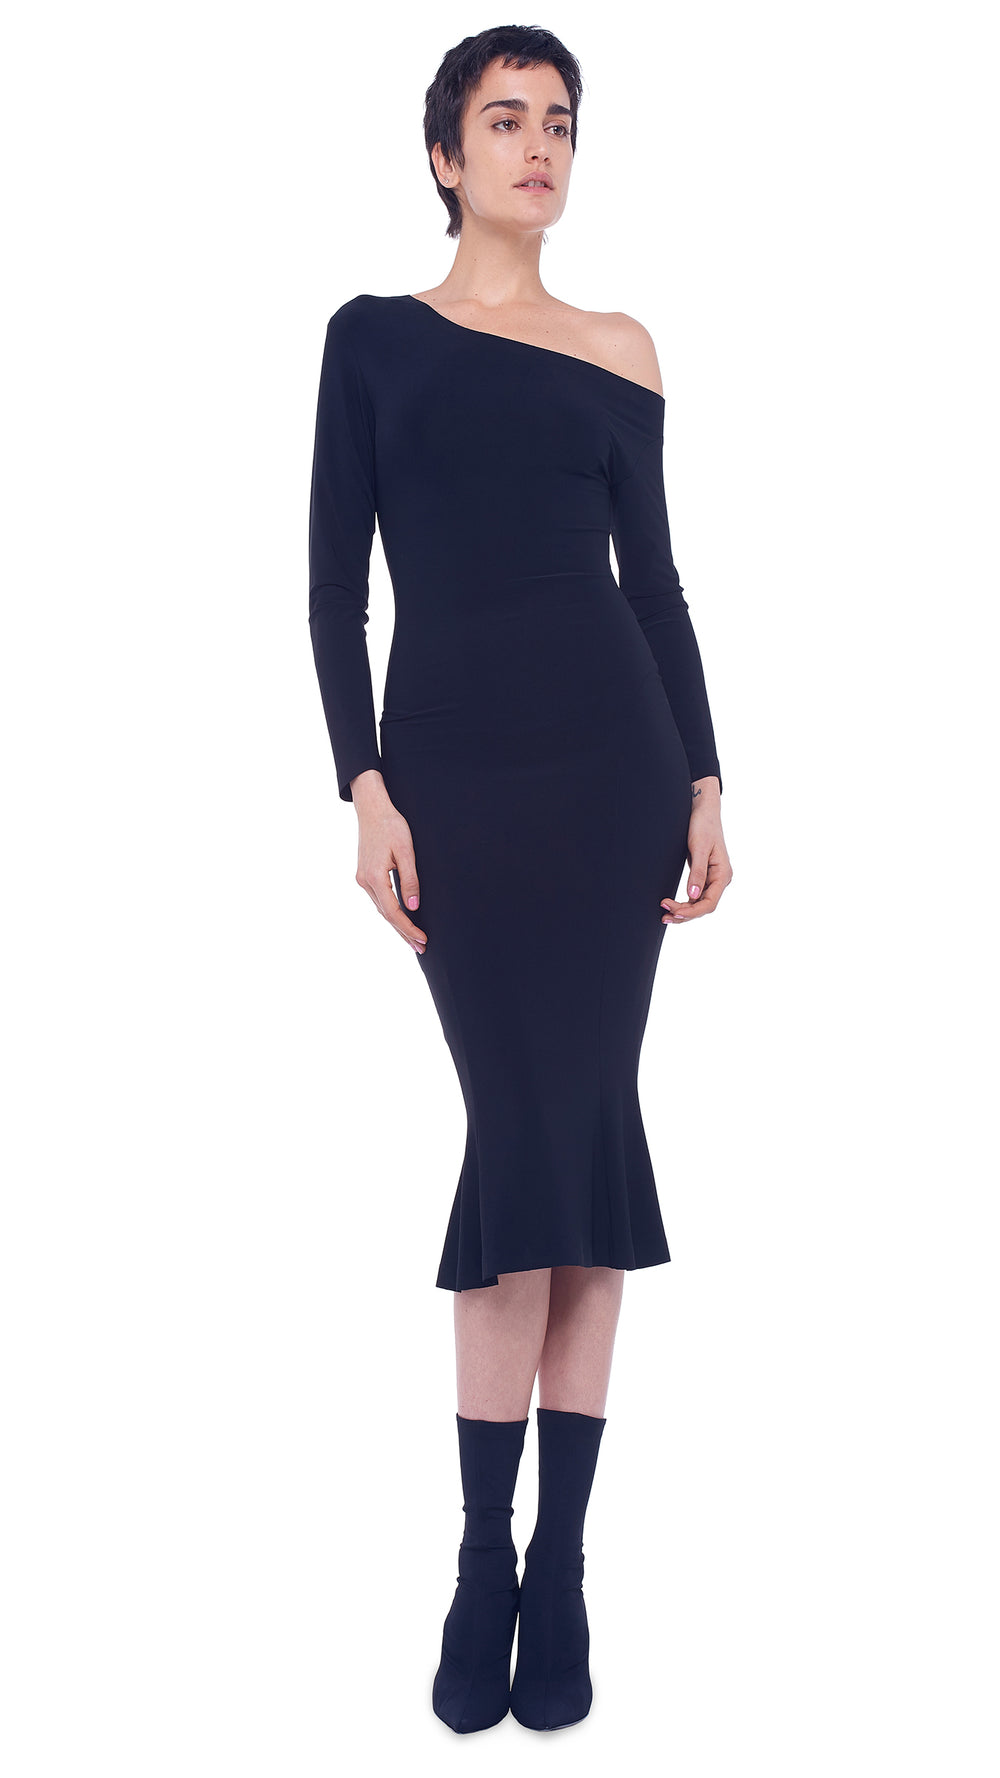 LONGSLEEVE DROP SHOULDER FISHTAIL DRESS TO MIDCALF - 1